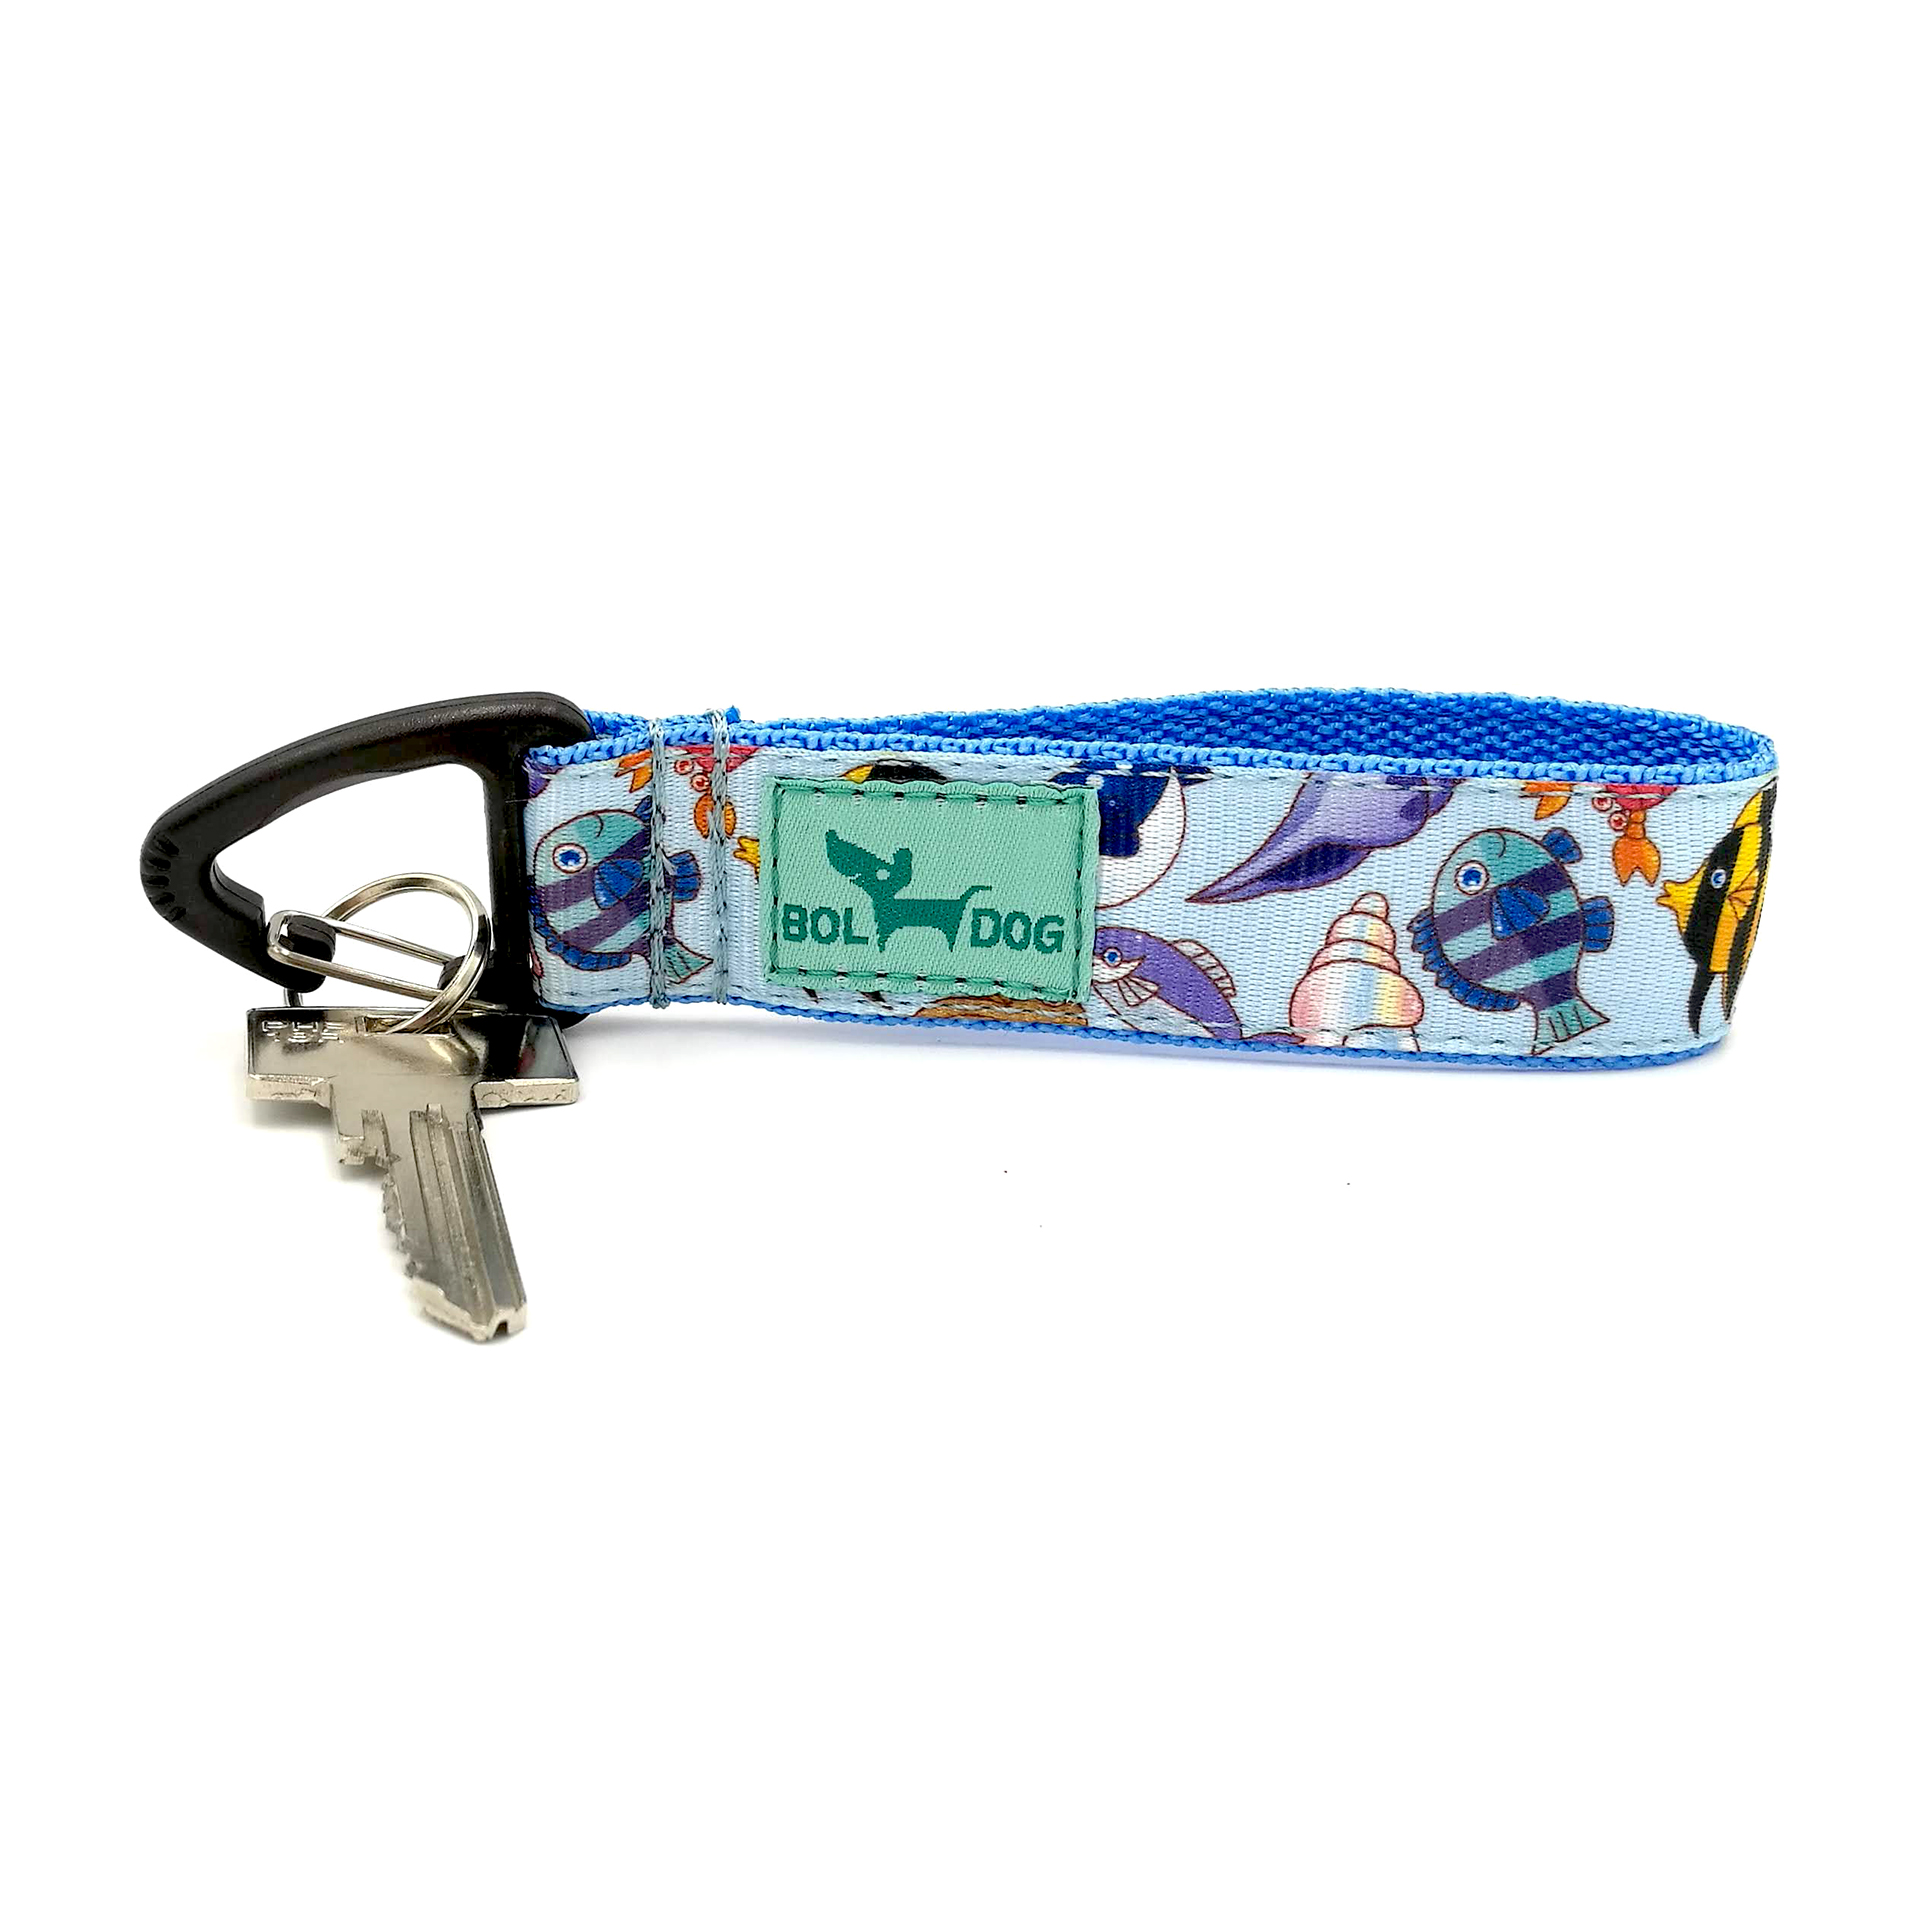 BlueBay key holder